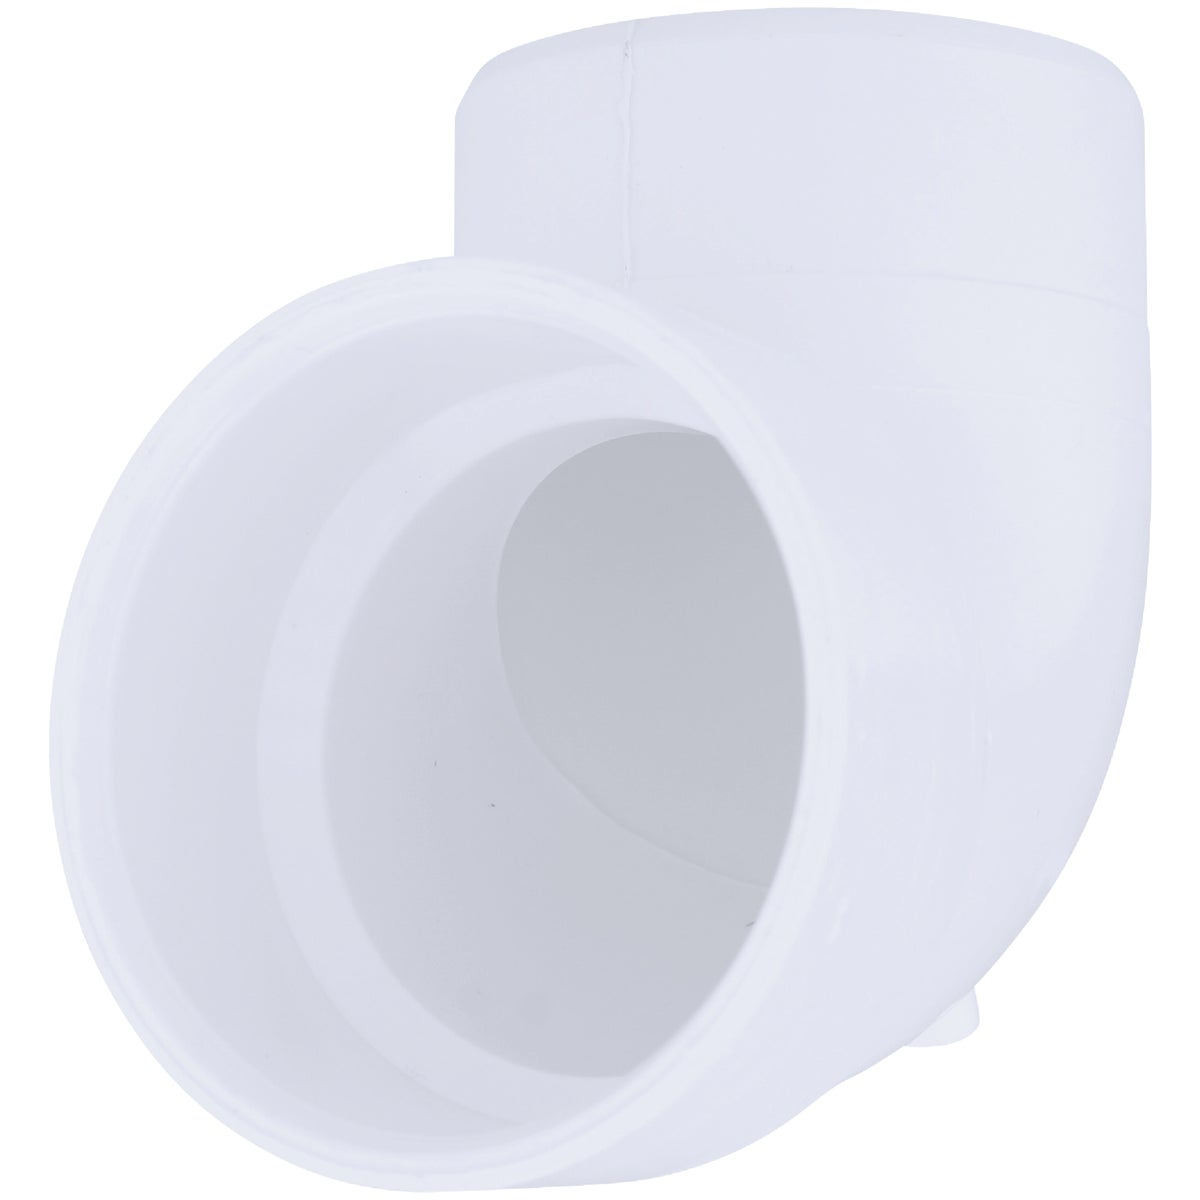 "2"" 90D VENT STREET ELBOW - 72920 by Genova Inc  Pvc Dwv"